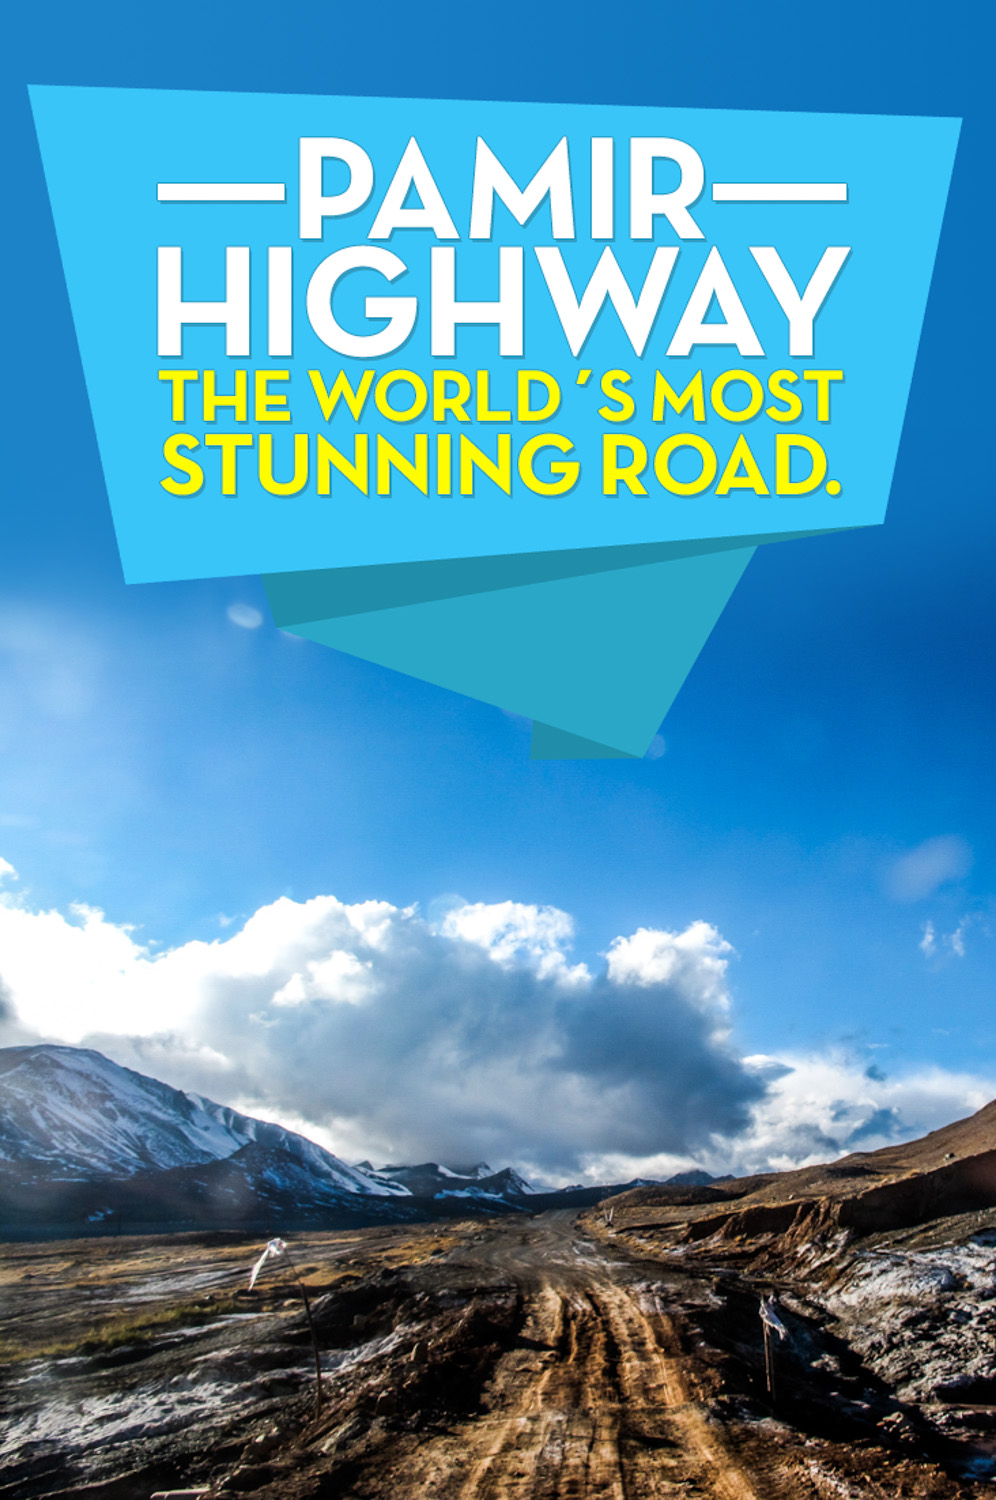 Travel The legendary Pamir highway in Central Asia,